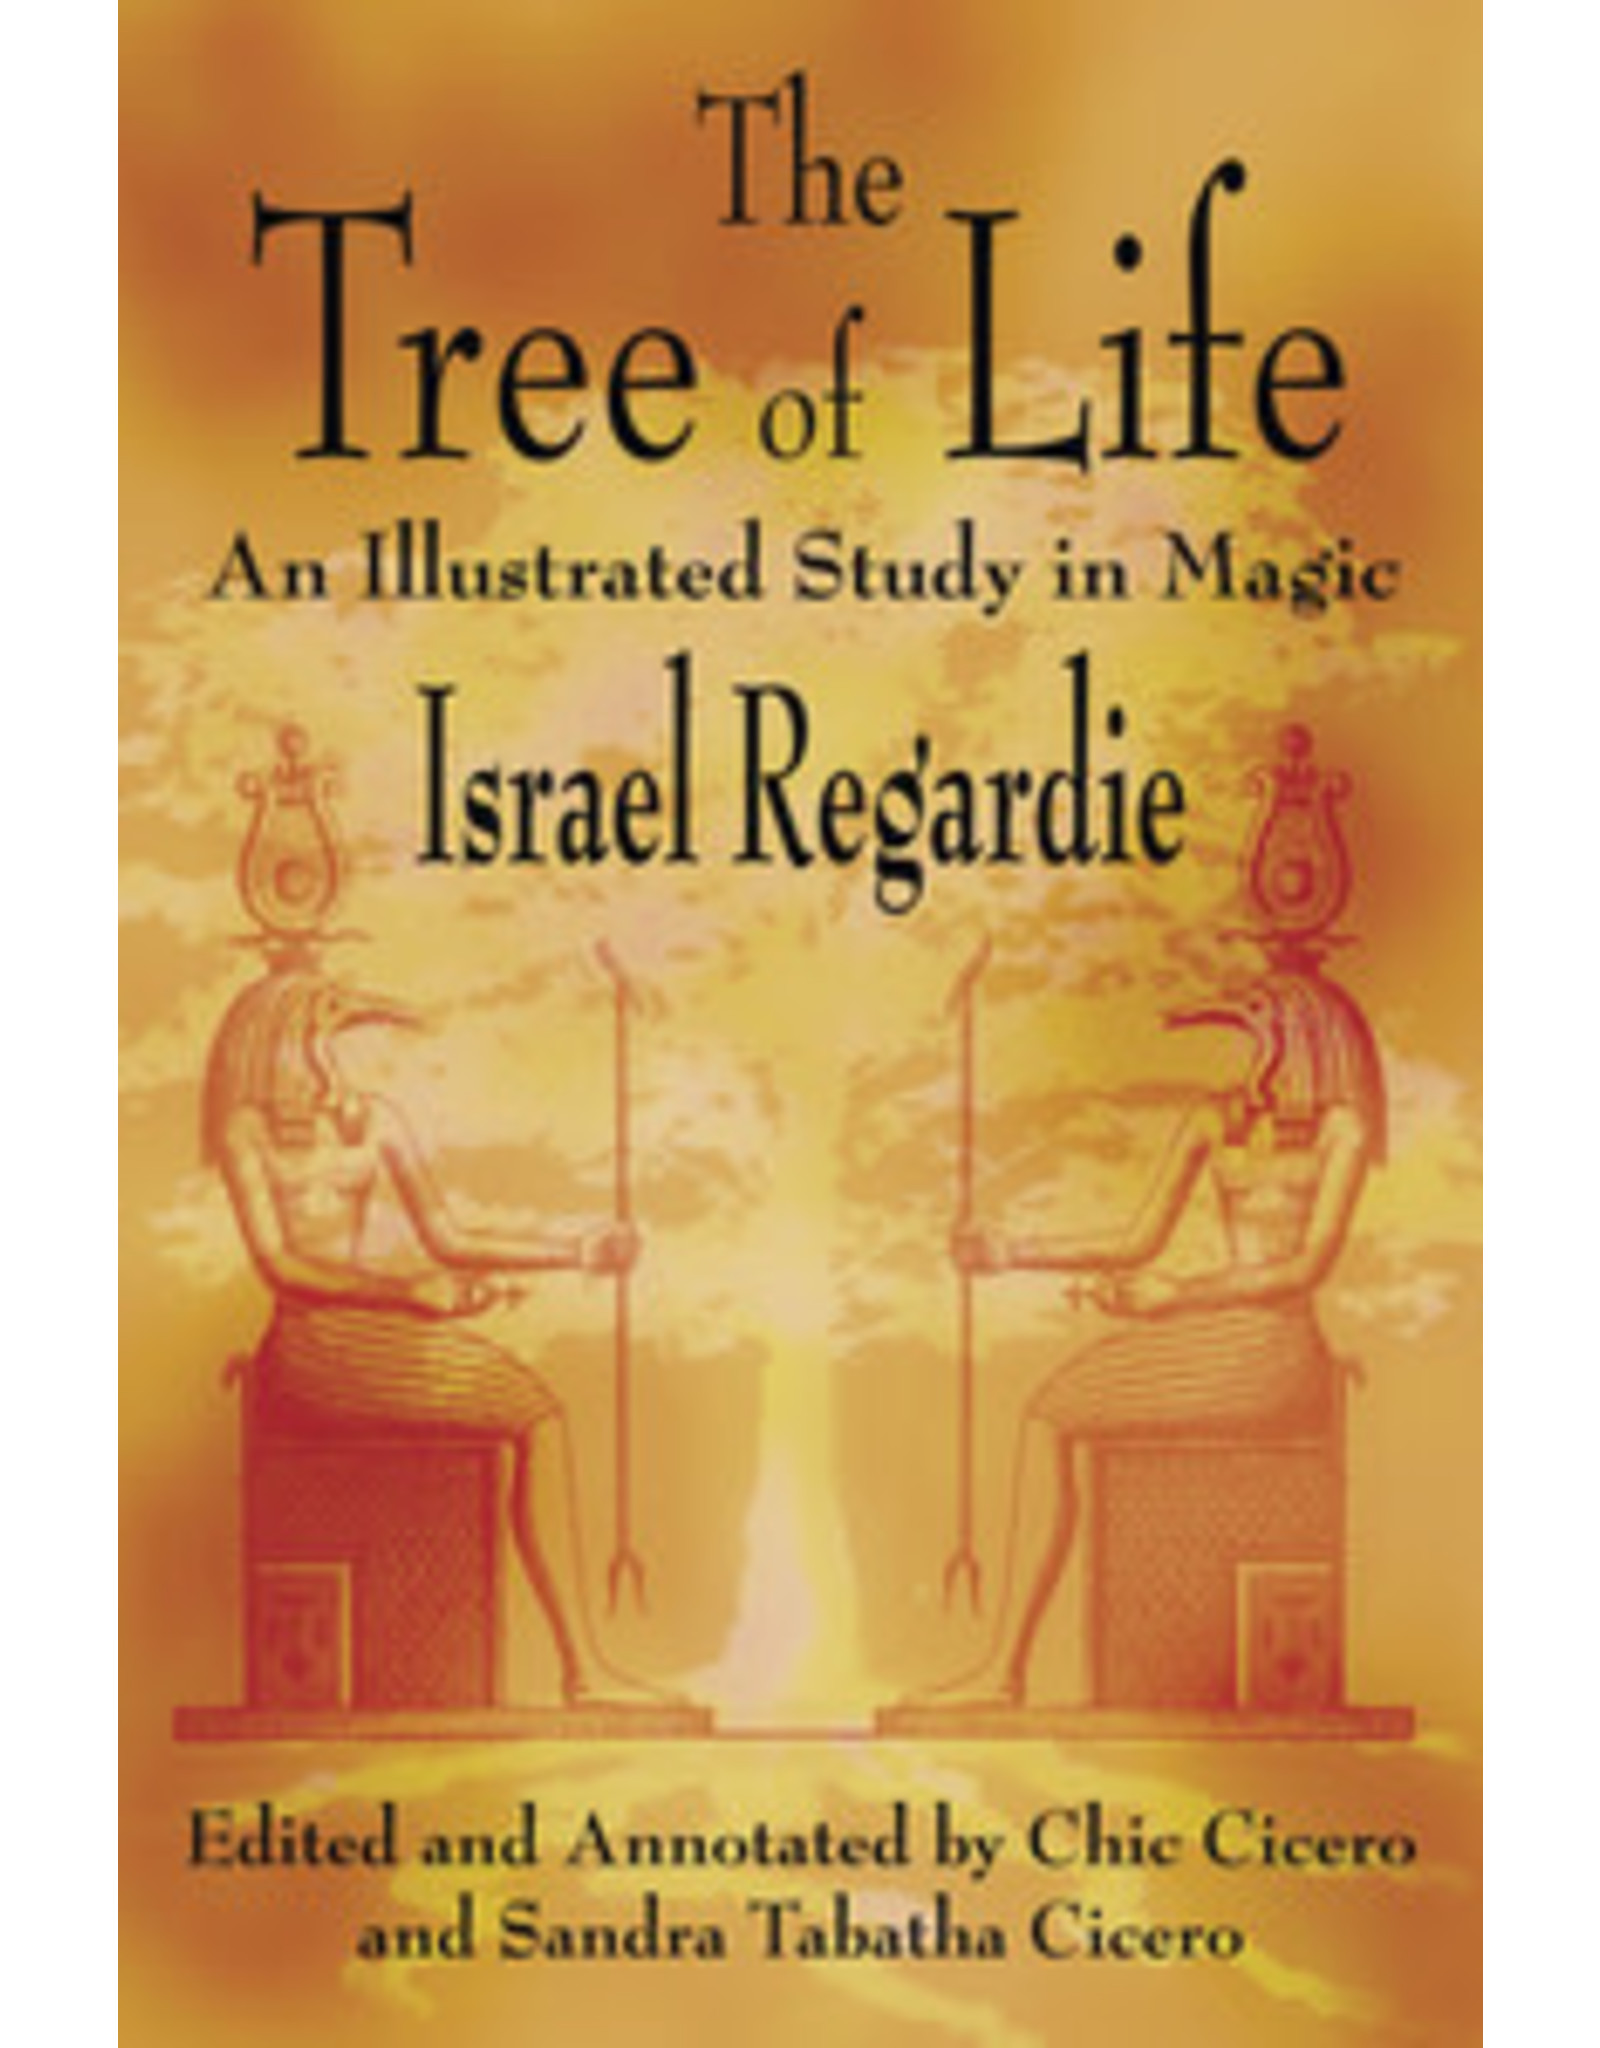 The Tree of Life- An Illustrated Study in Magic